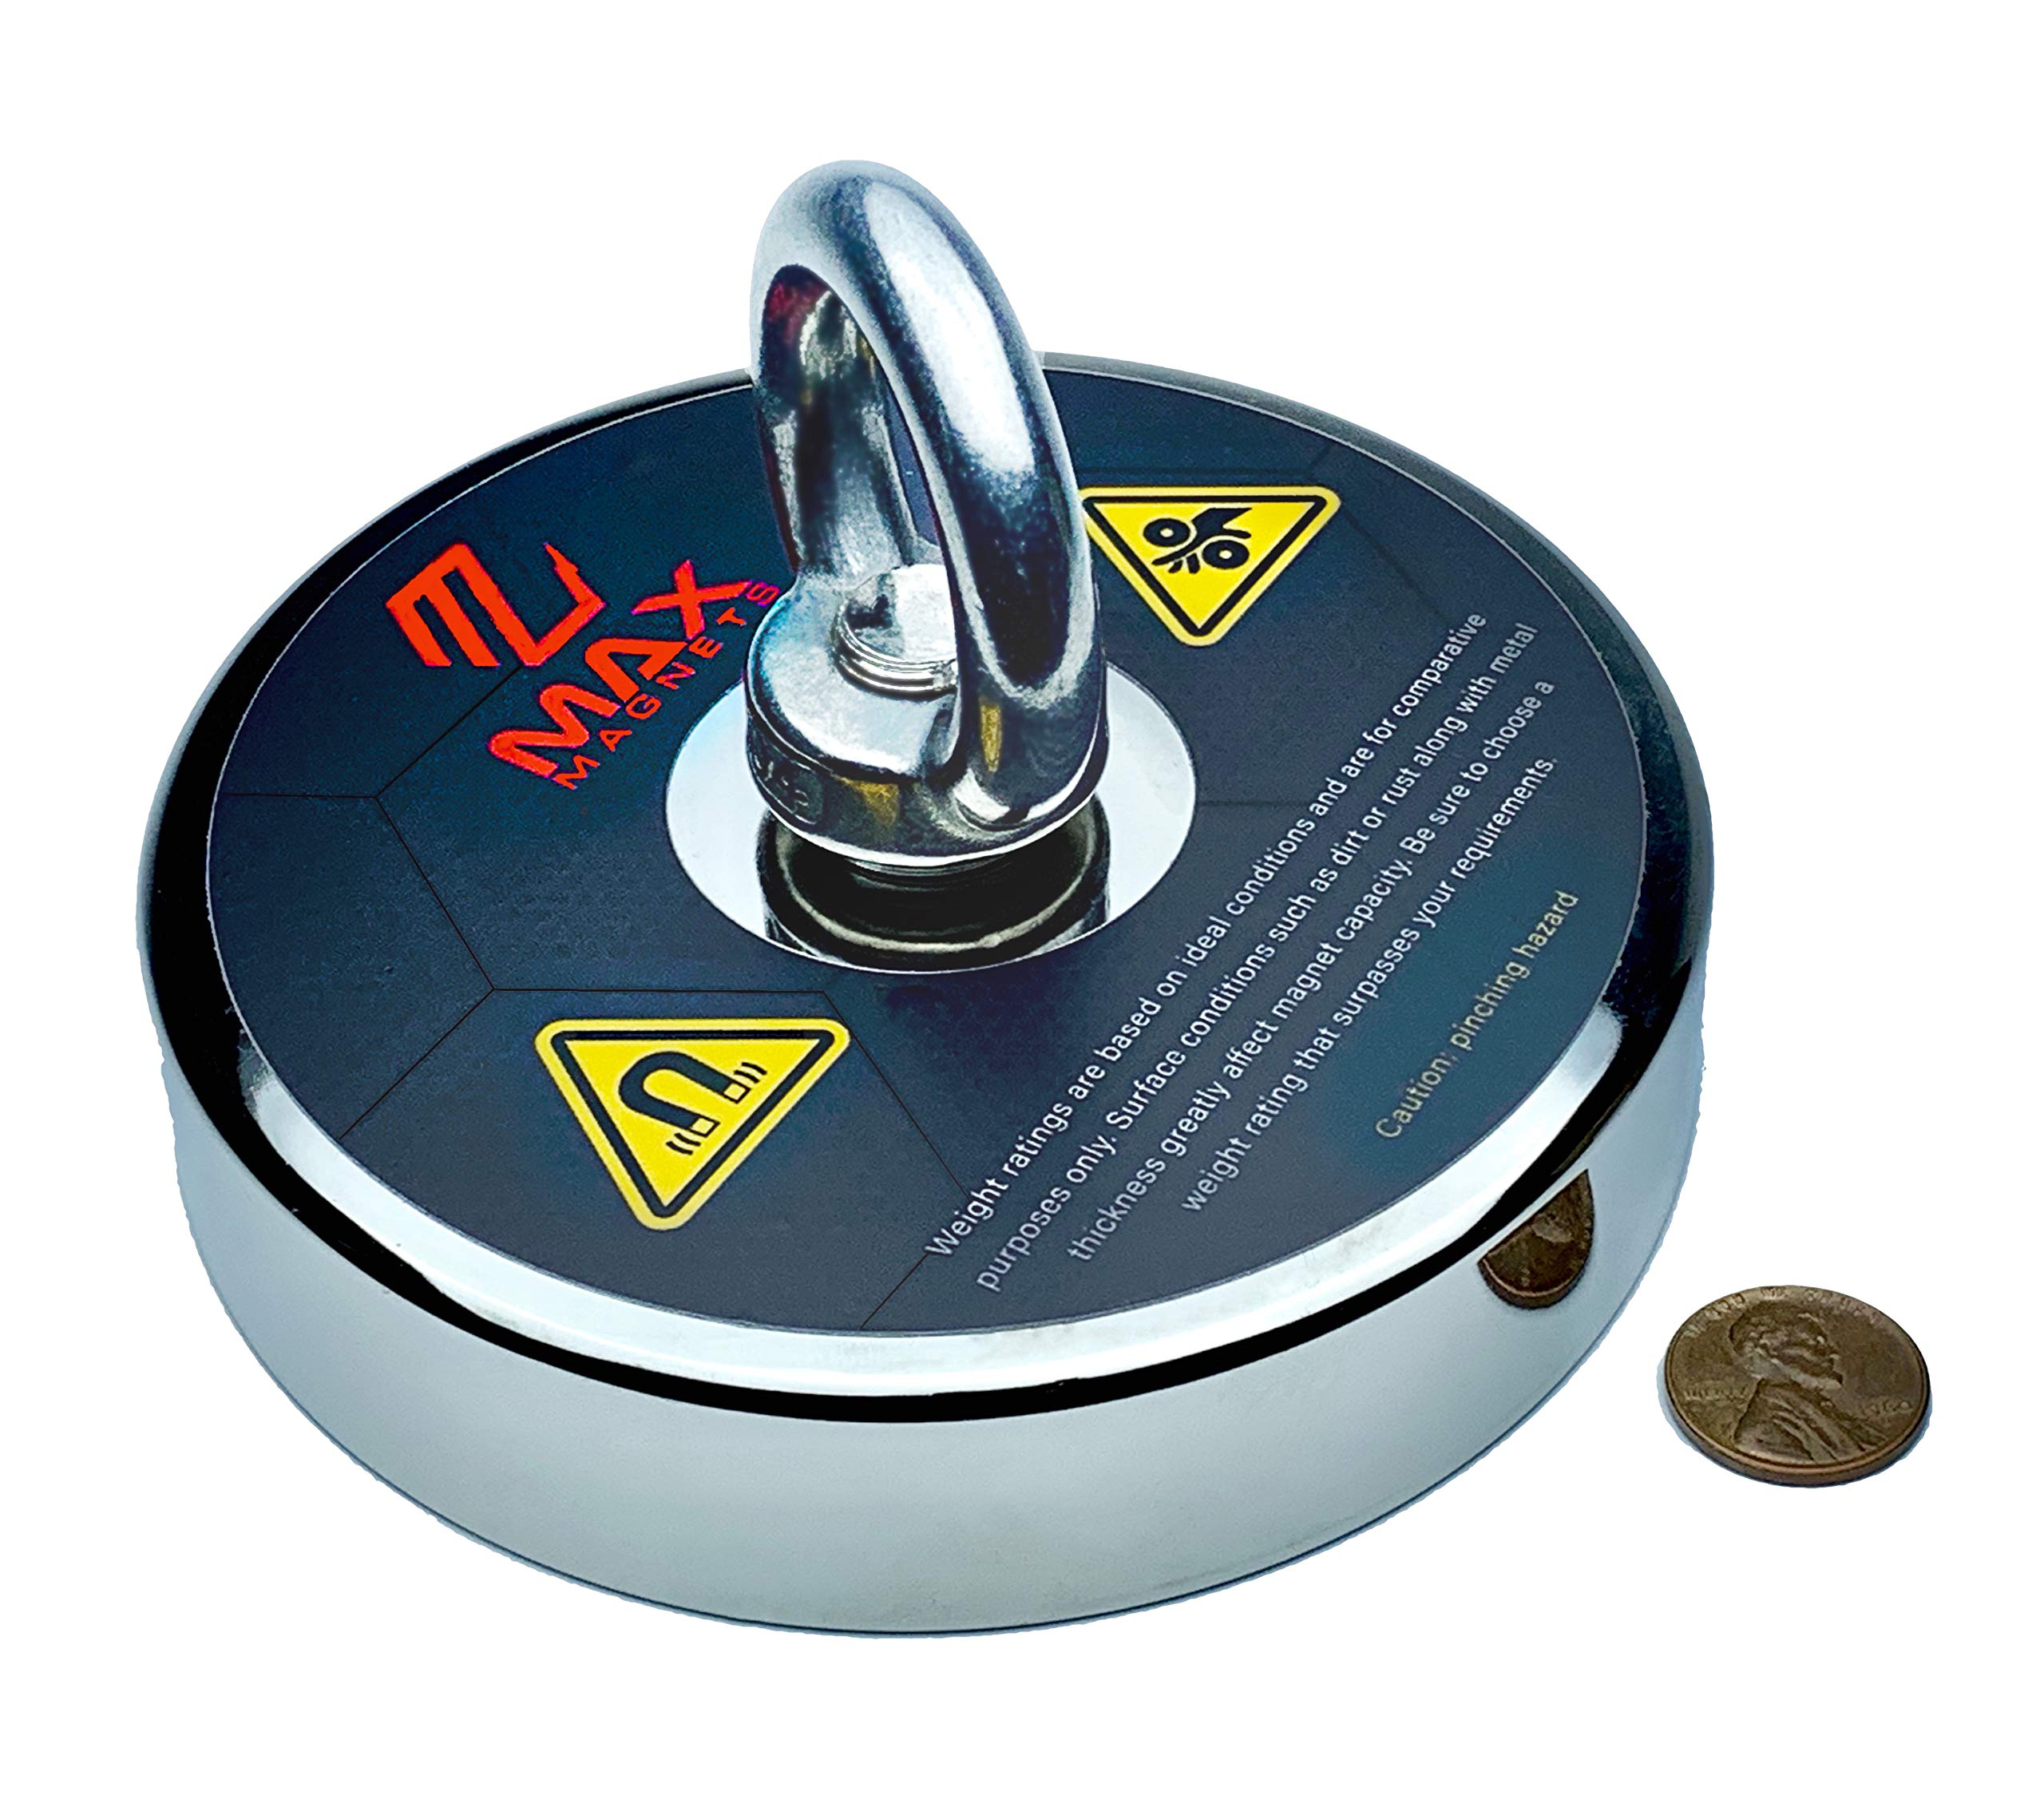 1,300+ LBS Pulling Force MaxMagnets Extreme Neodymium Fishing Magnet with Eyebolt, 4.72 Inch Diameter.